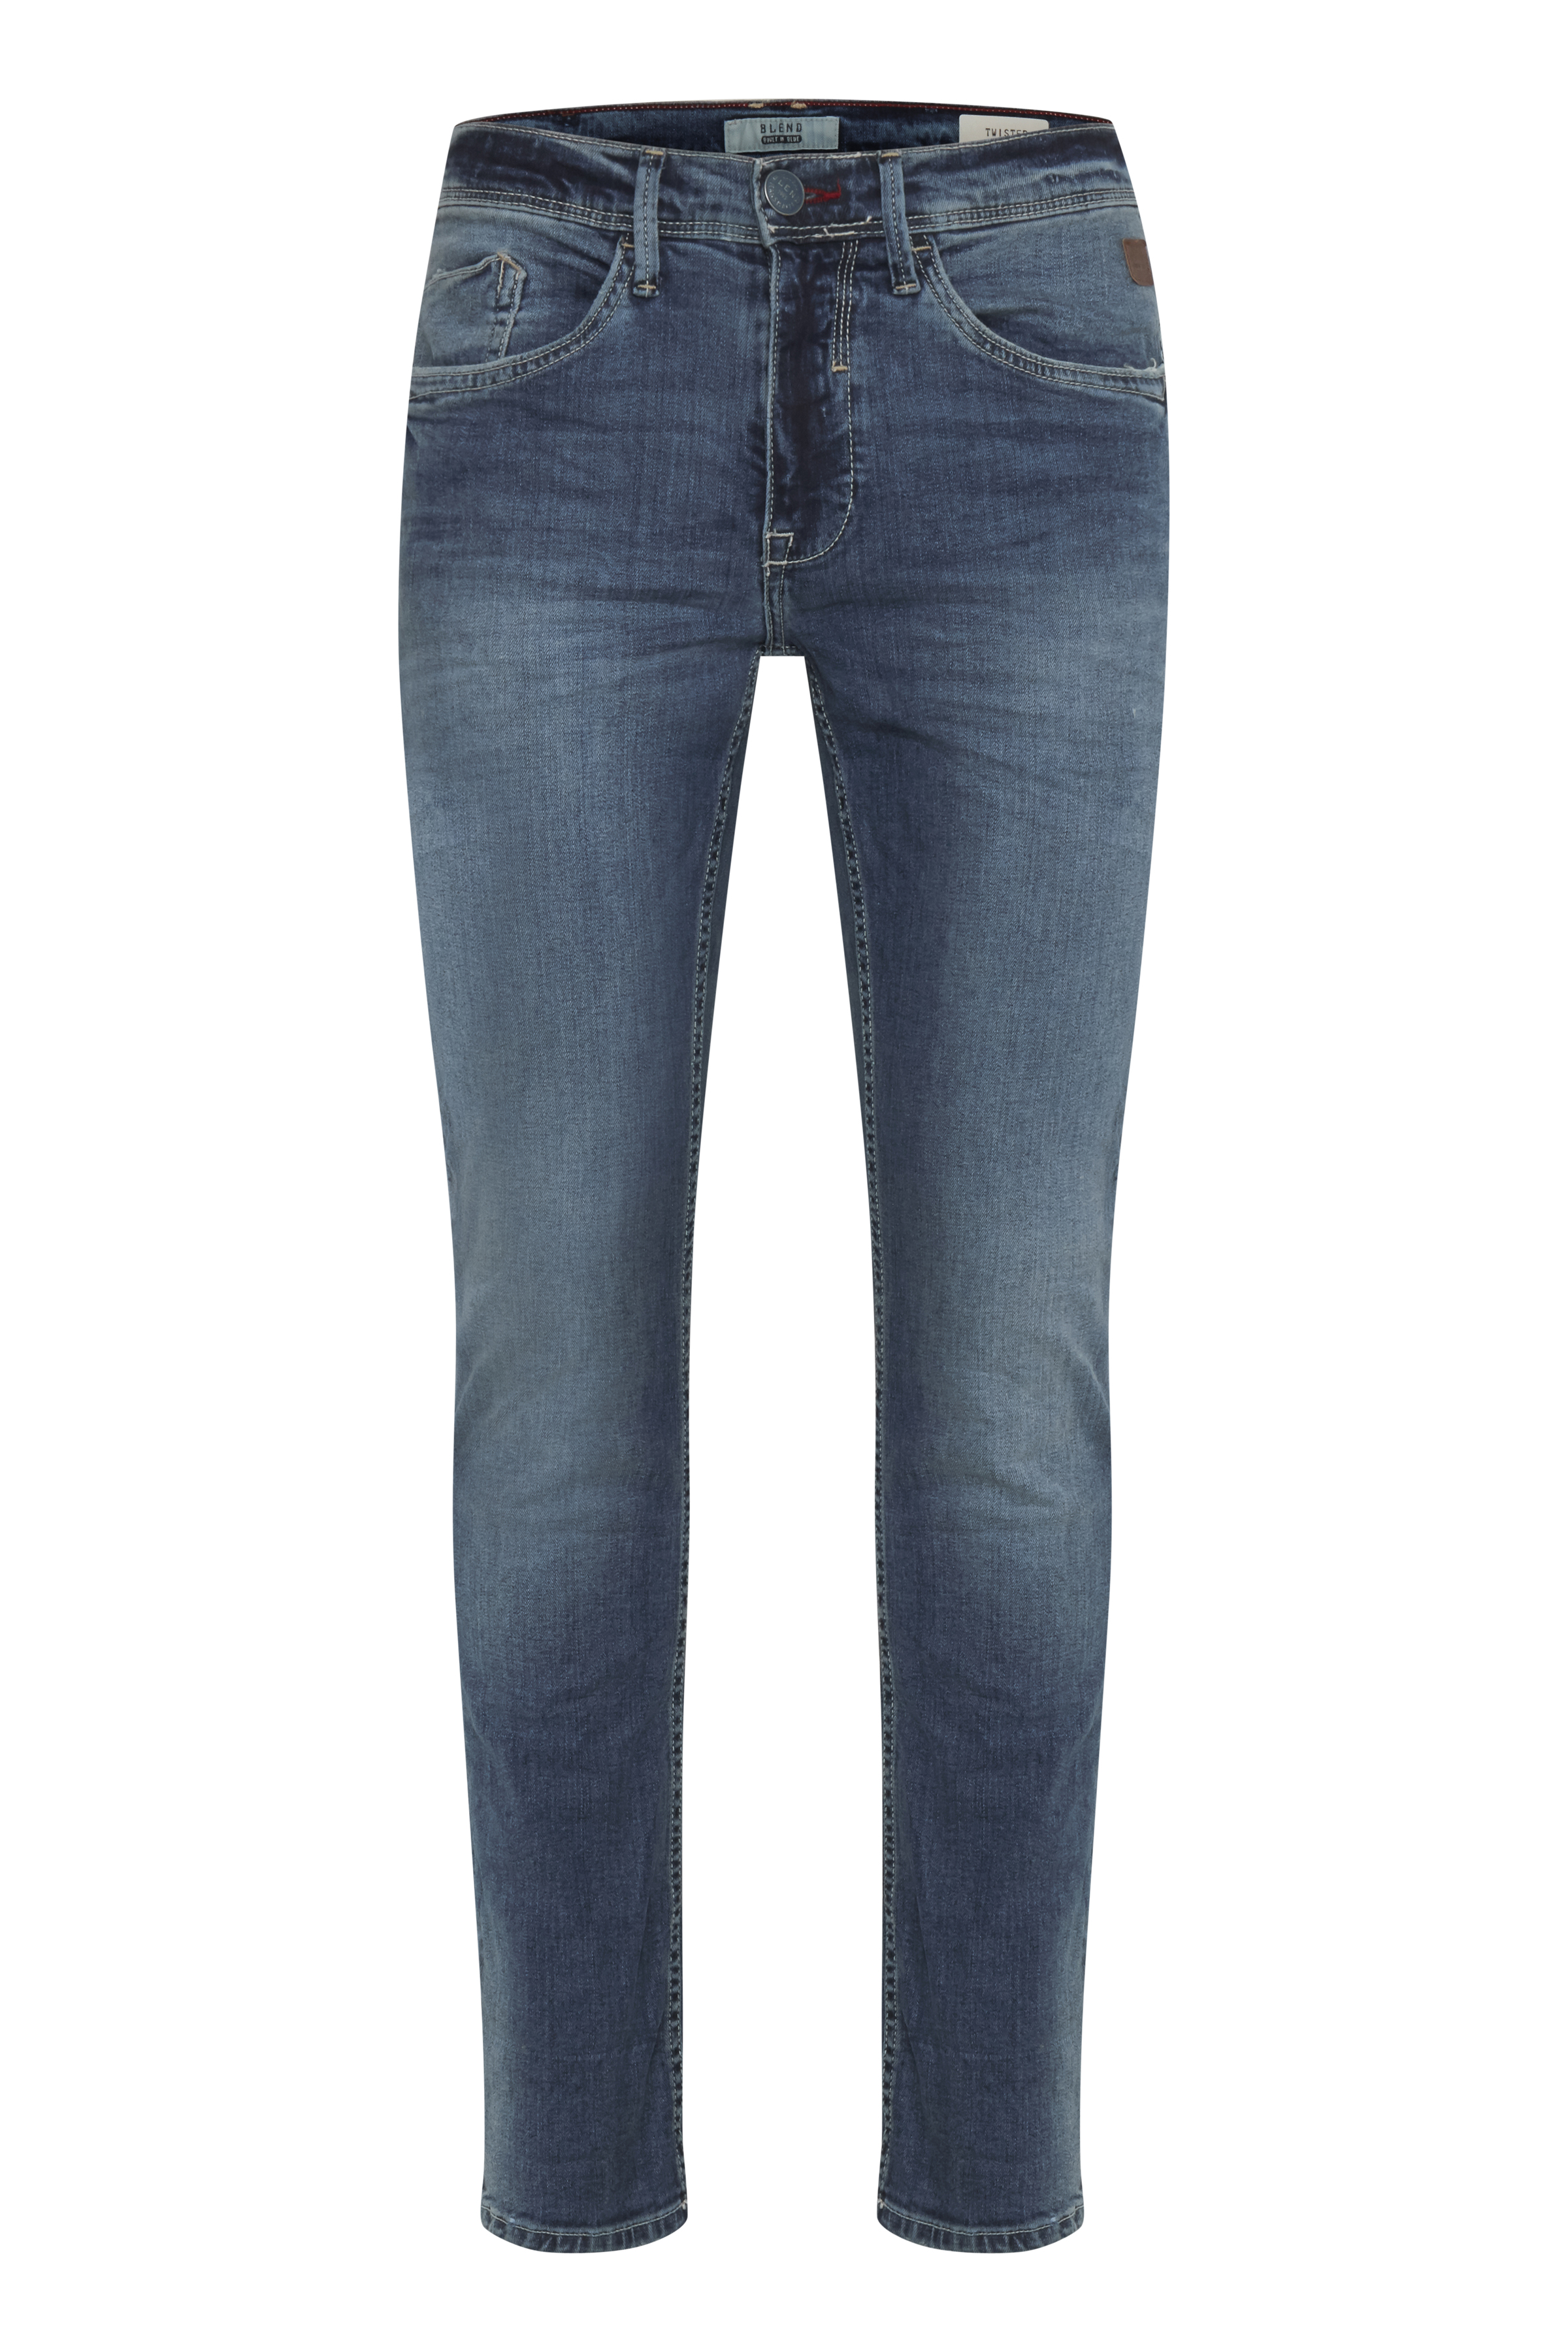 Denim Middle blue Jeans – Køb Denim Middle blue Jeans fra str. 28-40 her